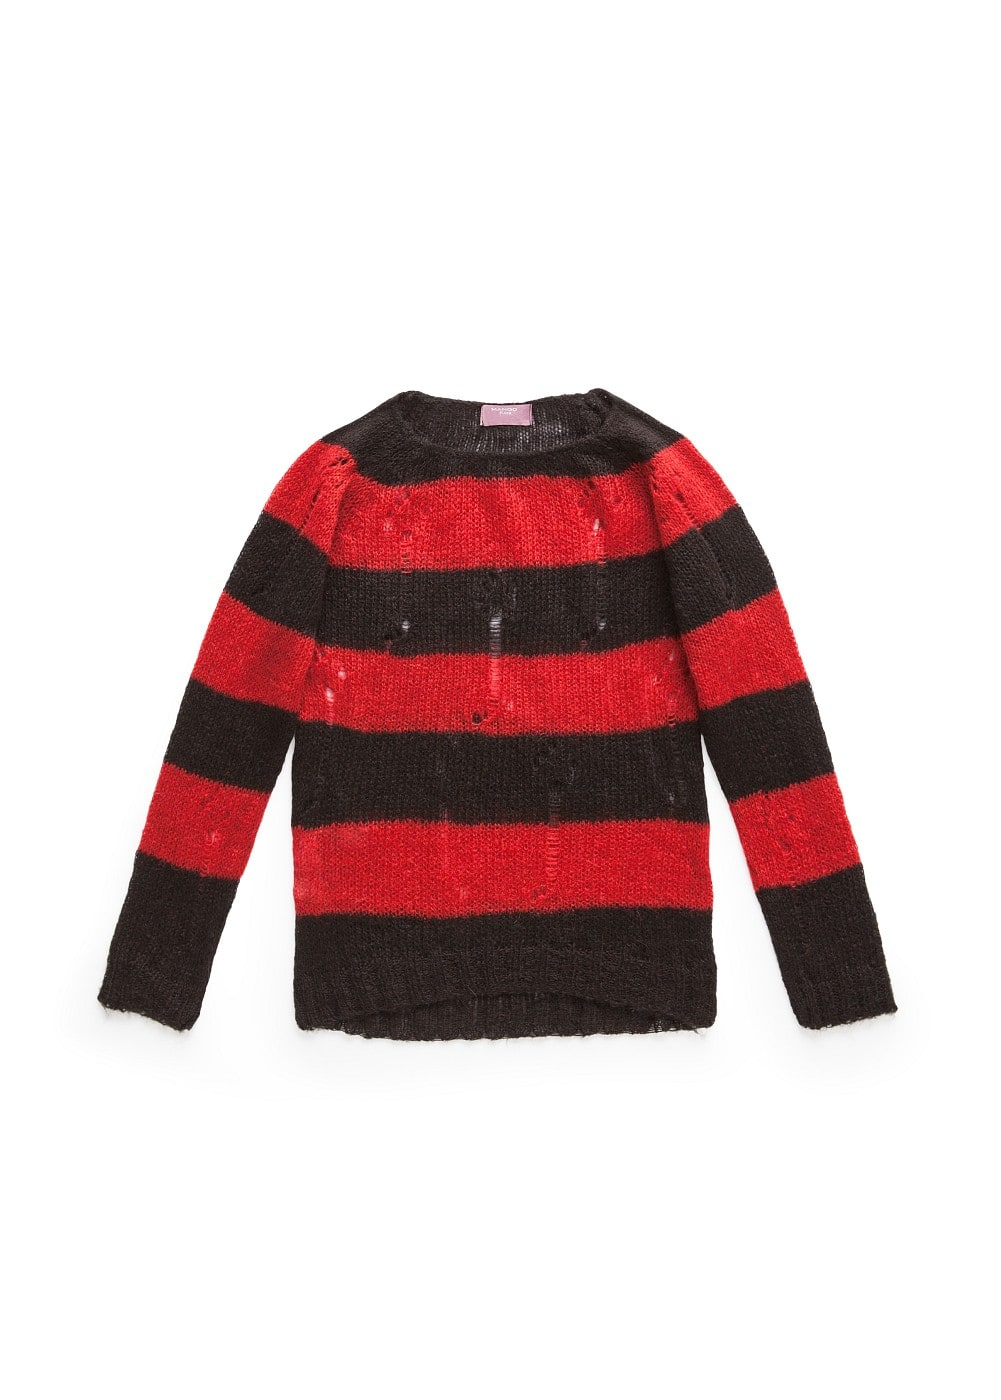 Openwork striped sweater